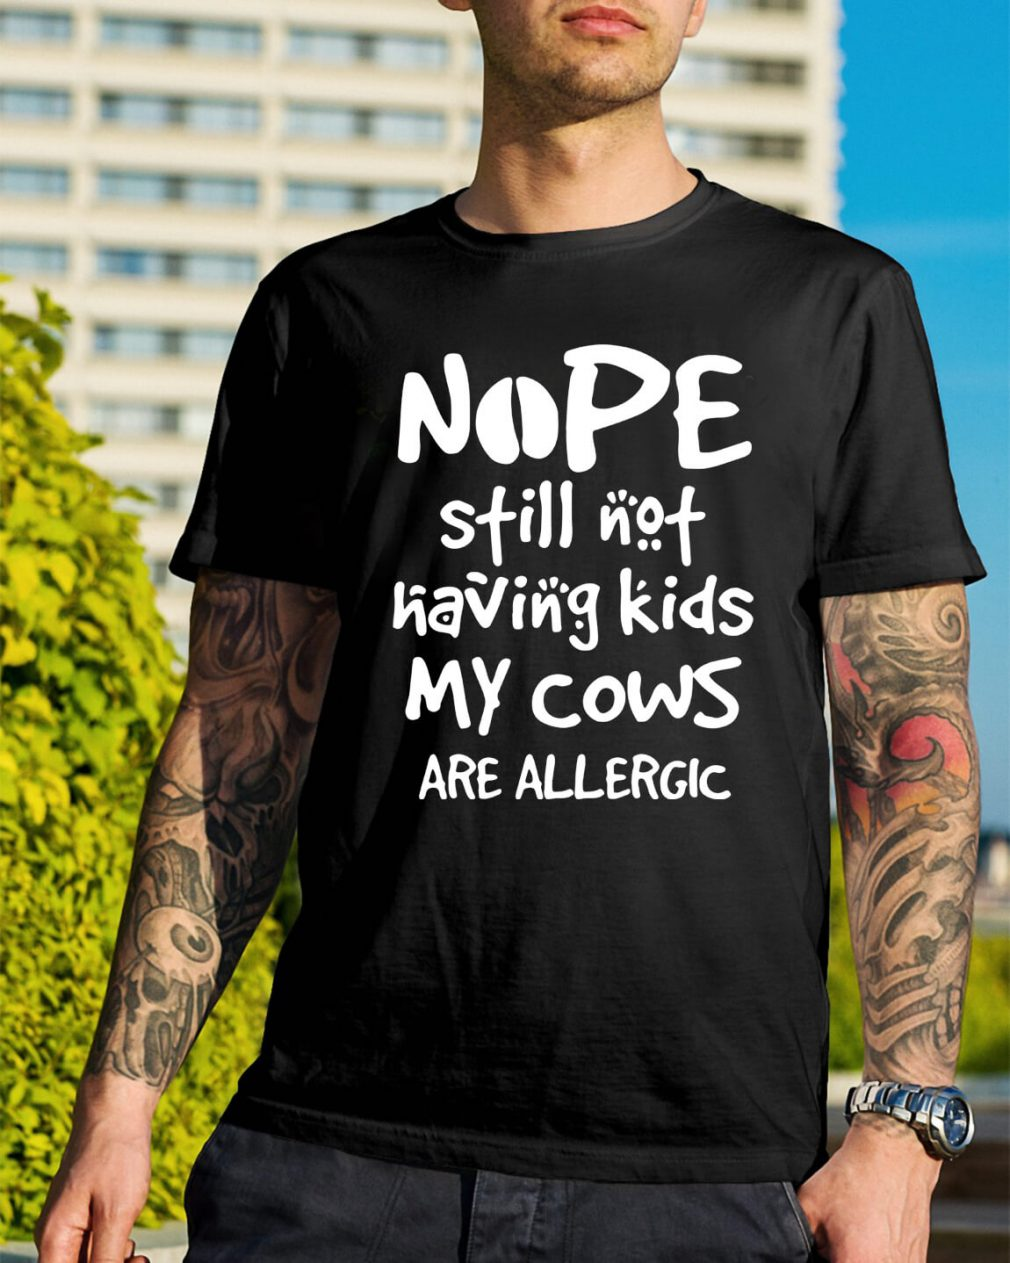 Nope still not having kids my cows are allergic shirt